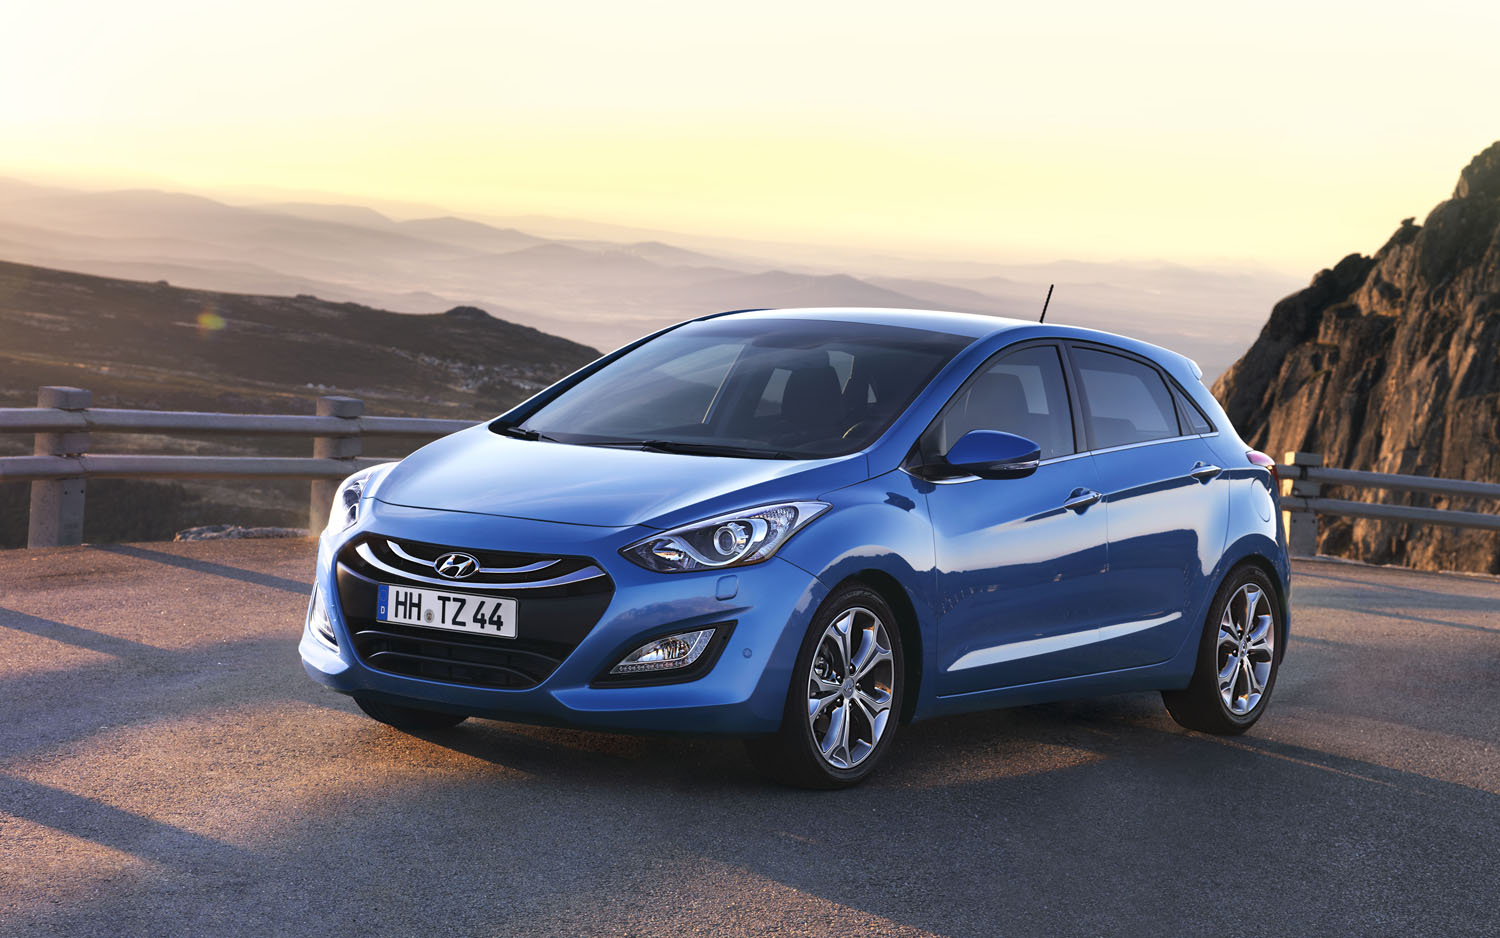 2012 Hyundai I30 Front Three Quarter 22